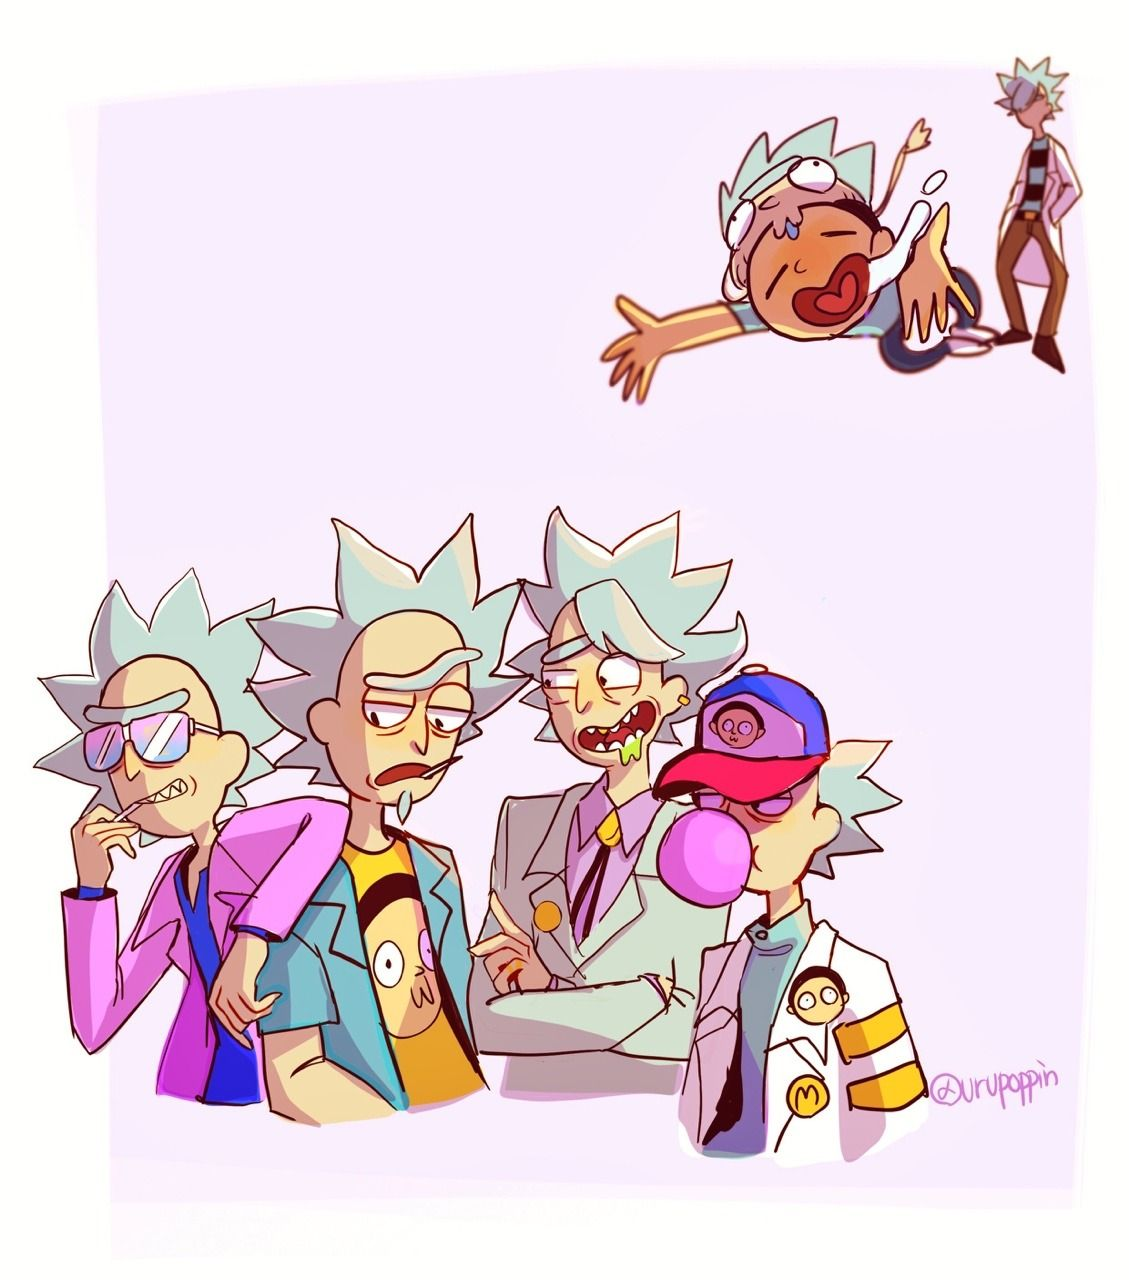 Pin By La Cueva On Rik I Morti Rick And Morty Time Rick And Morty Morty